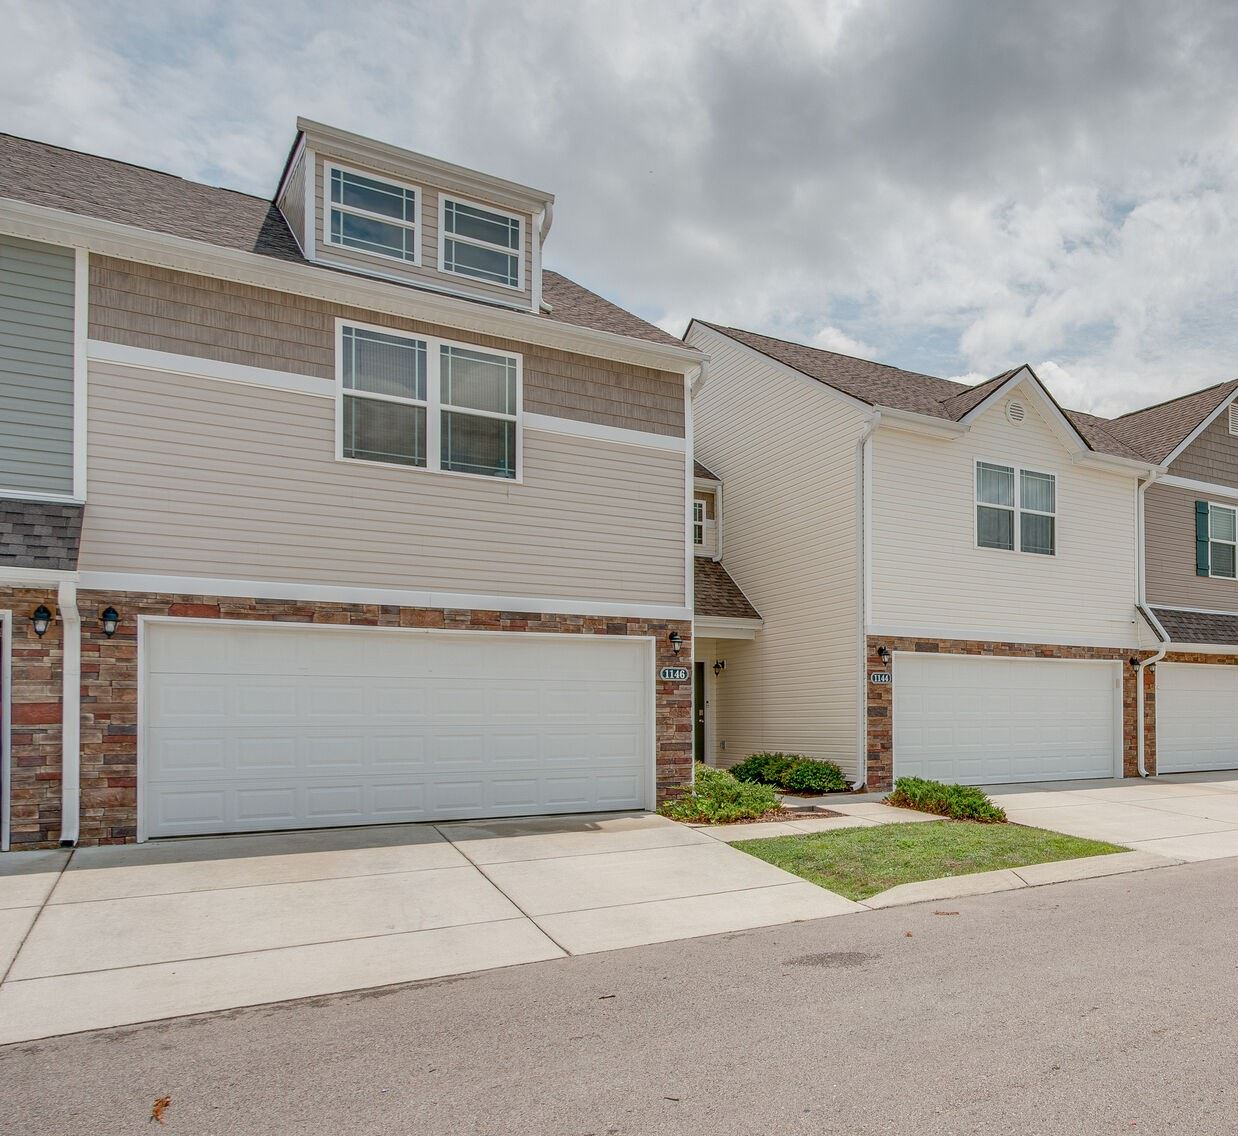 Photo of 1146 Somerset Springs Dr, Spring Hill, TN 37174 (MLS # 2275104)